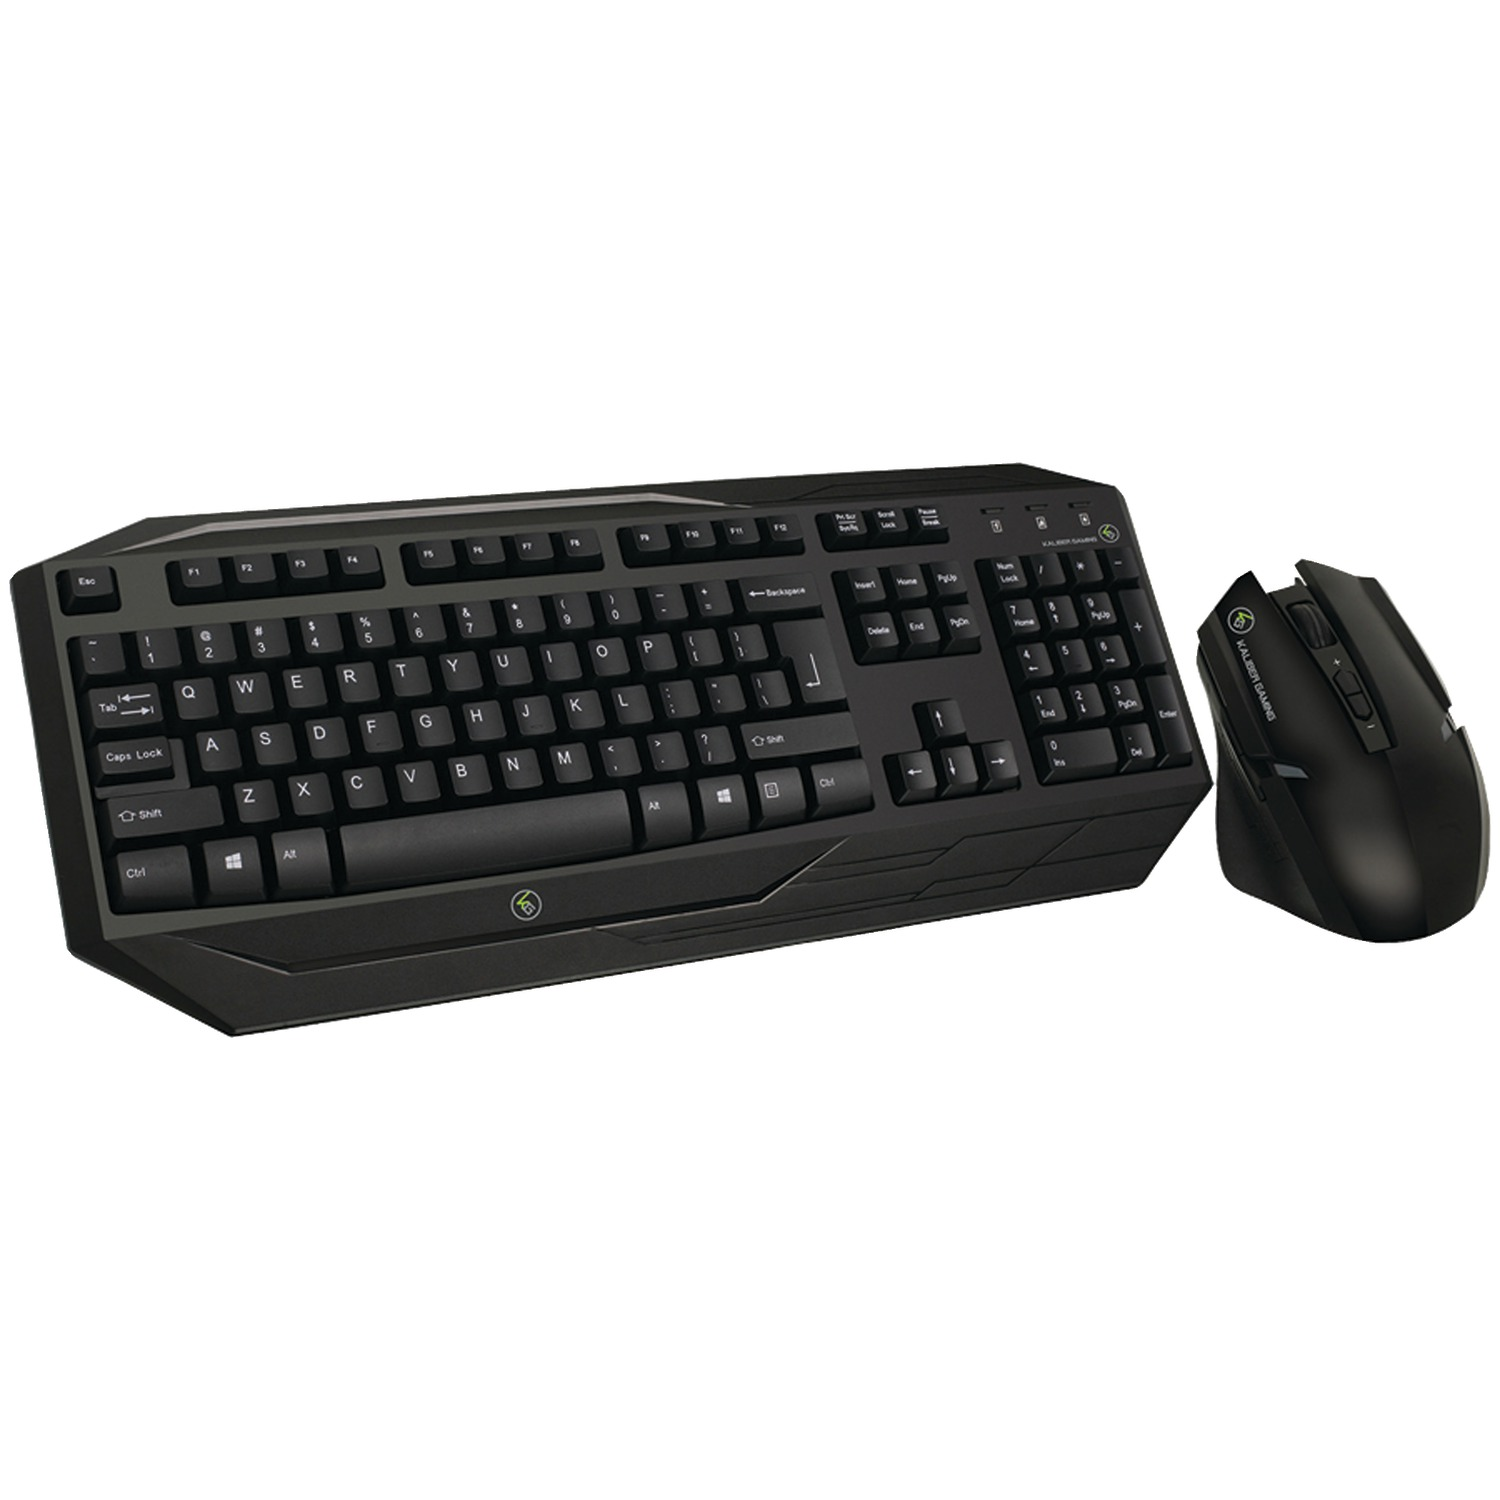 Iogear Gkm602r Kaliber Gaming Wireless Gaming Keyboard & Mouse Combo by IOGEAR